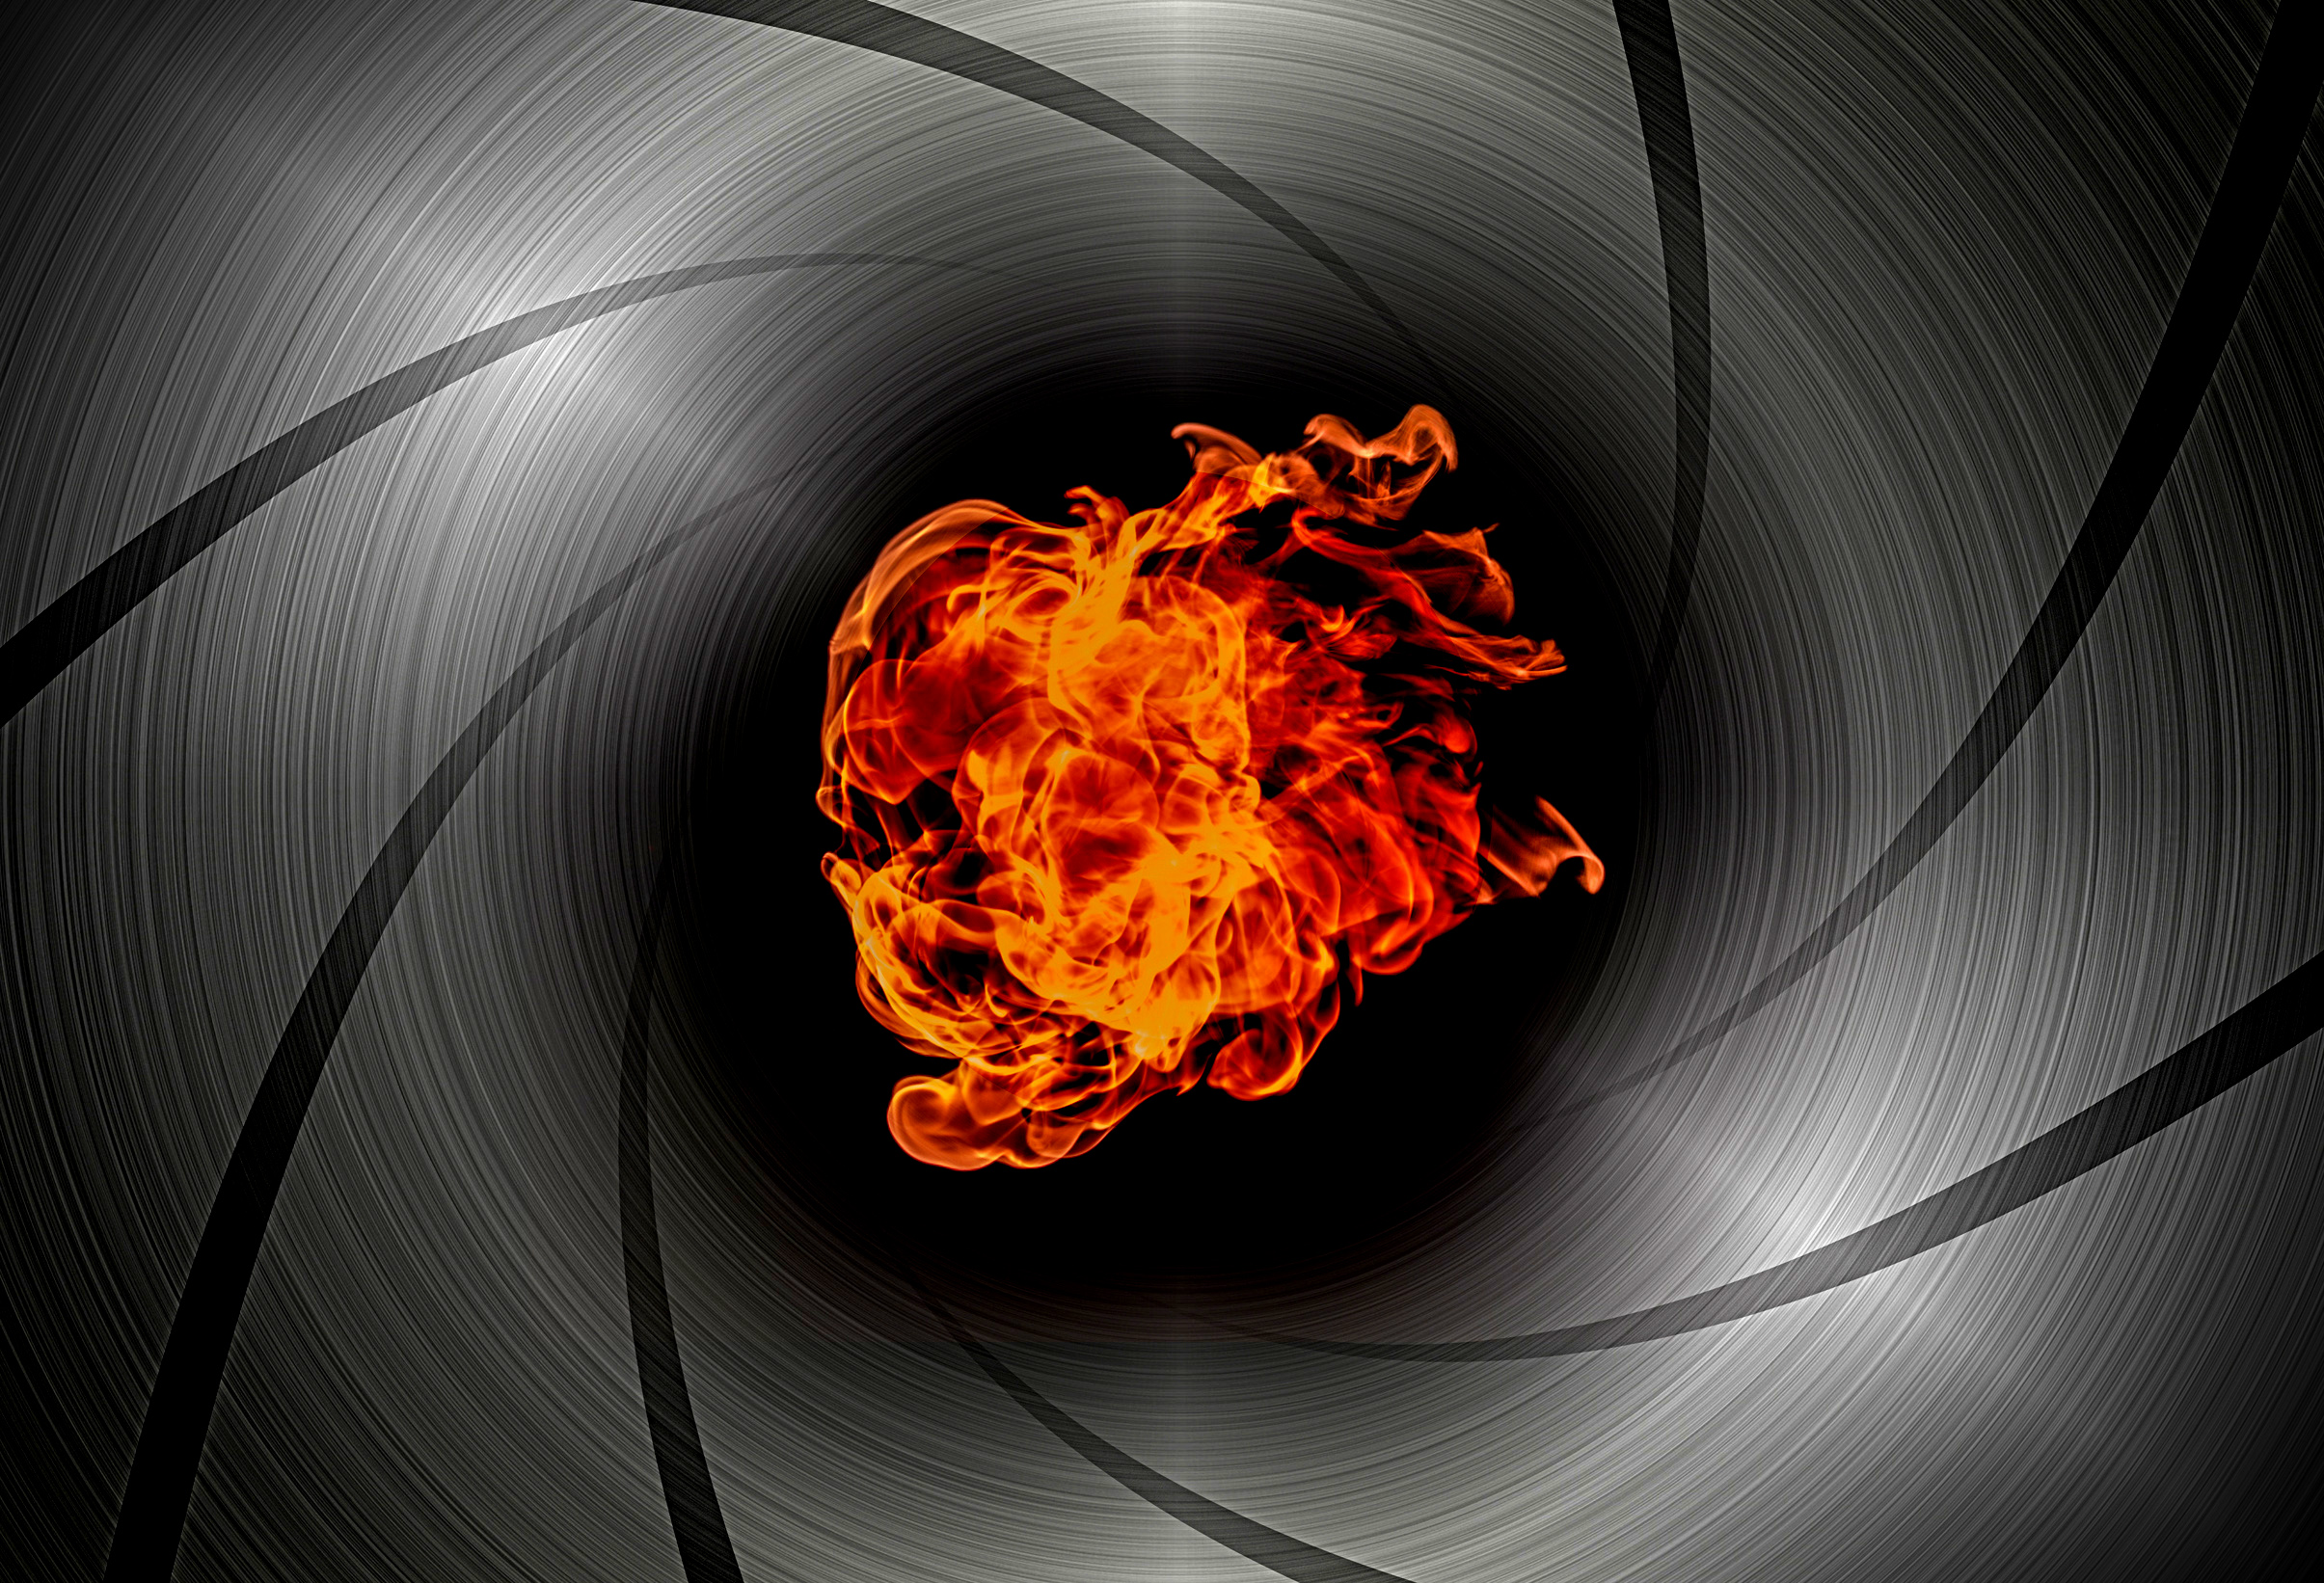 Shooting through the barrel of a gun - flame burst photo